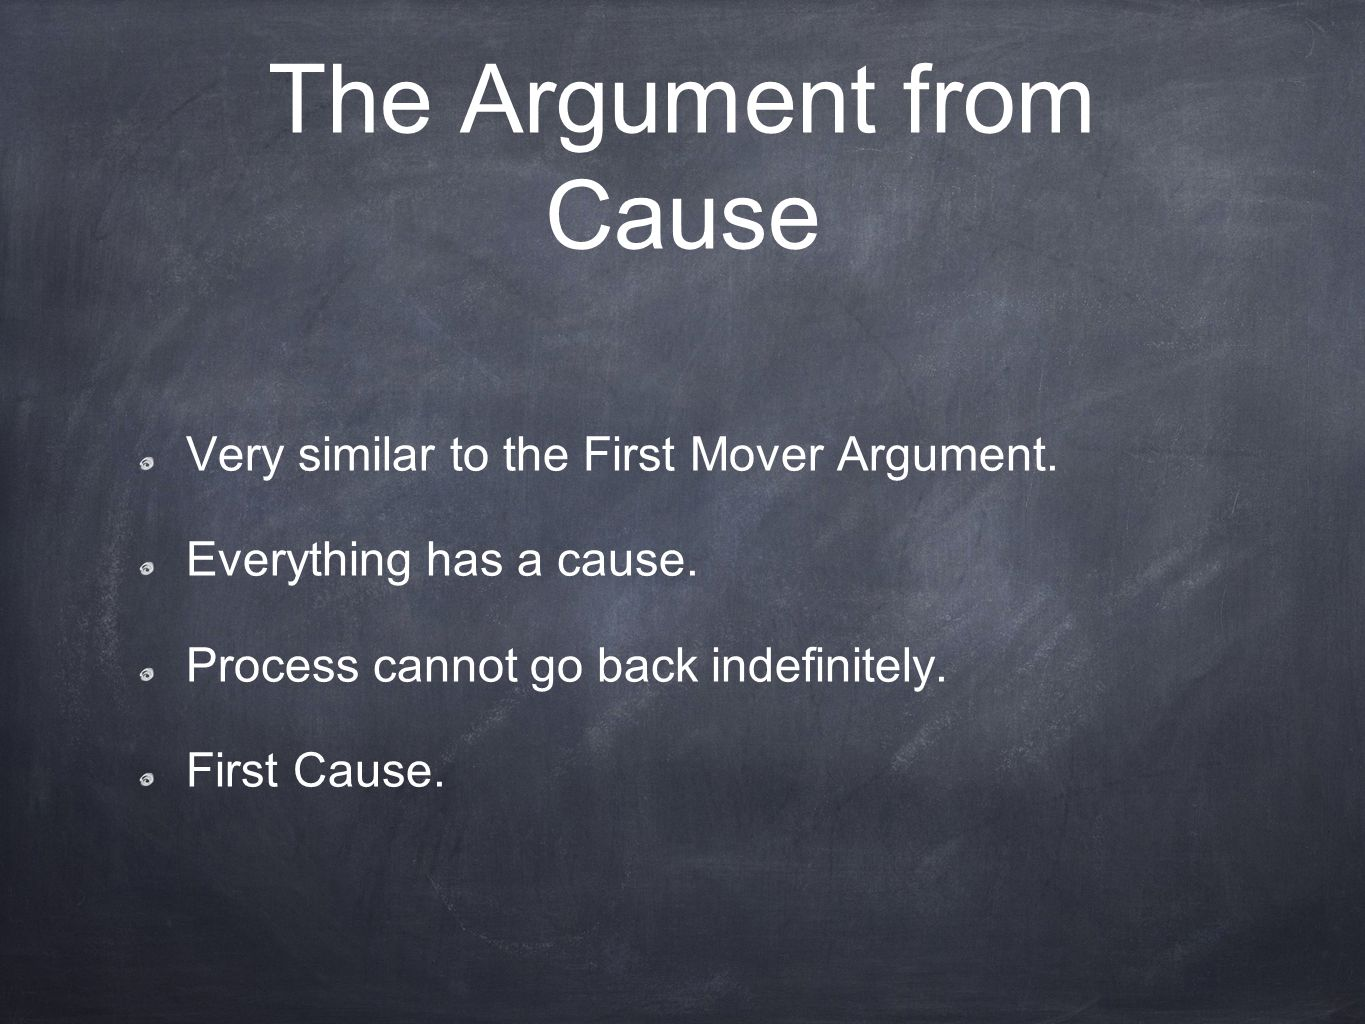 The Argument from Cause Very similar to the First Mover Argument. Everything has a cause. Process cannot go back indefinitely. First Cause.